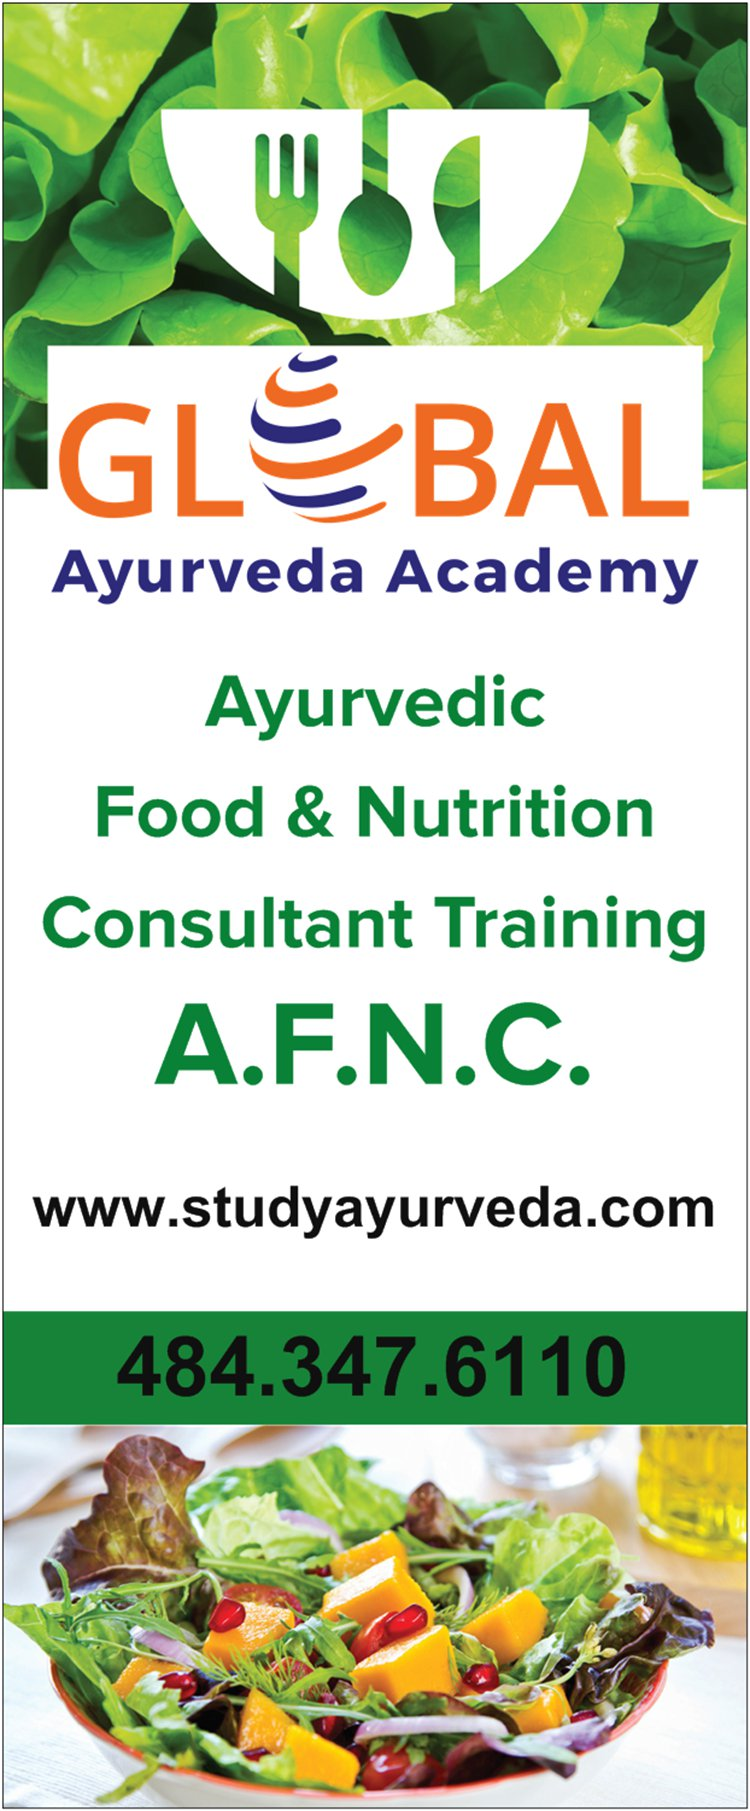 Ayurveda Doctor - GLOBAL AYURVEDA